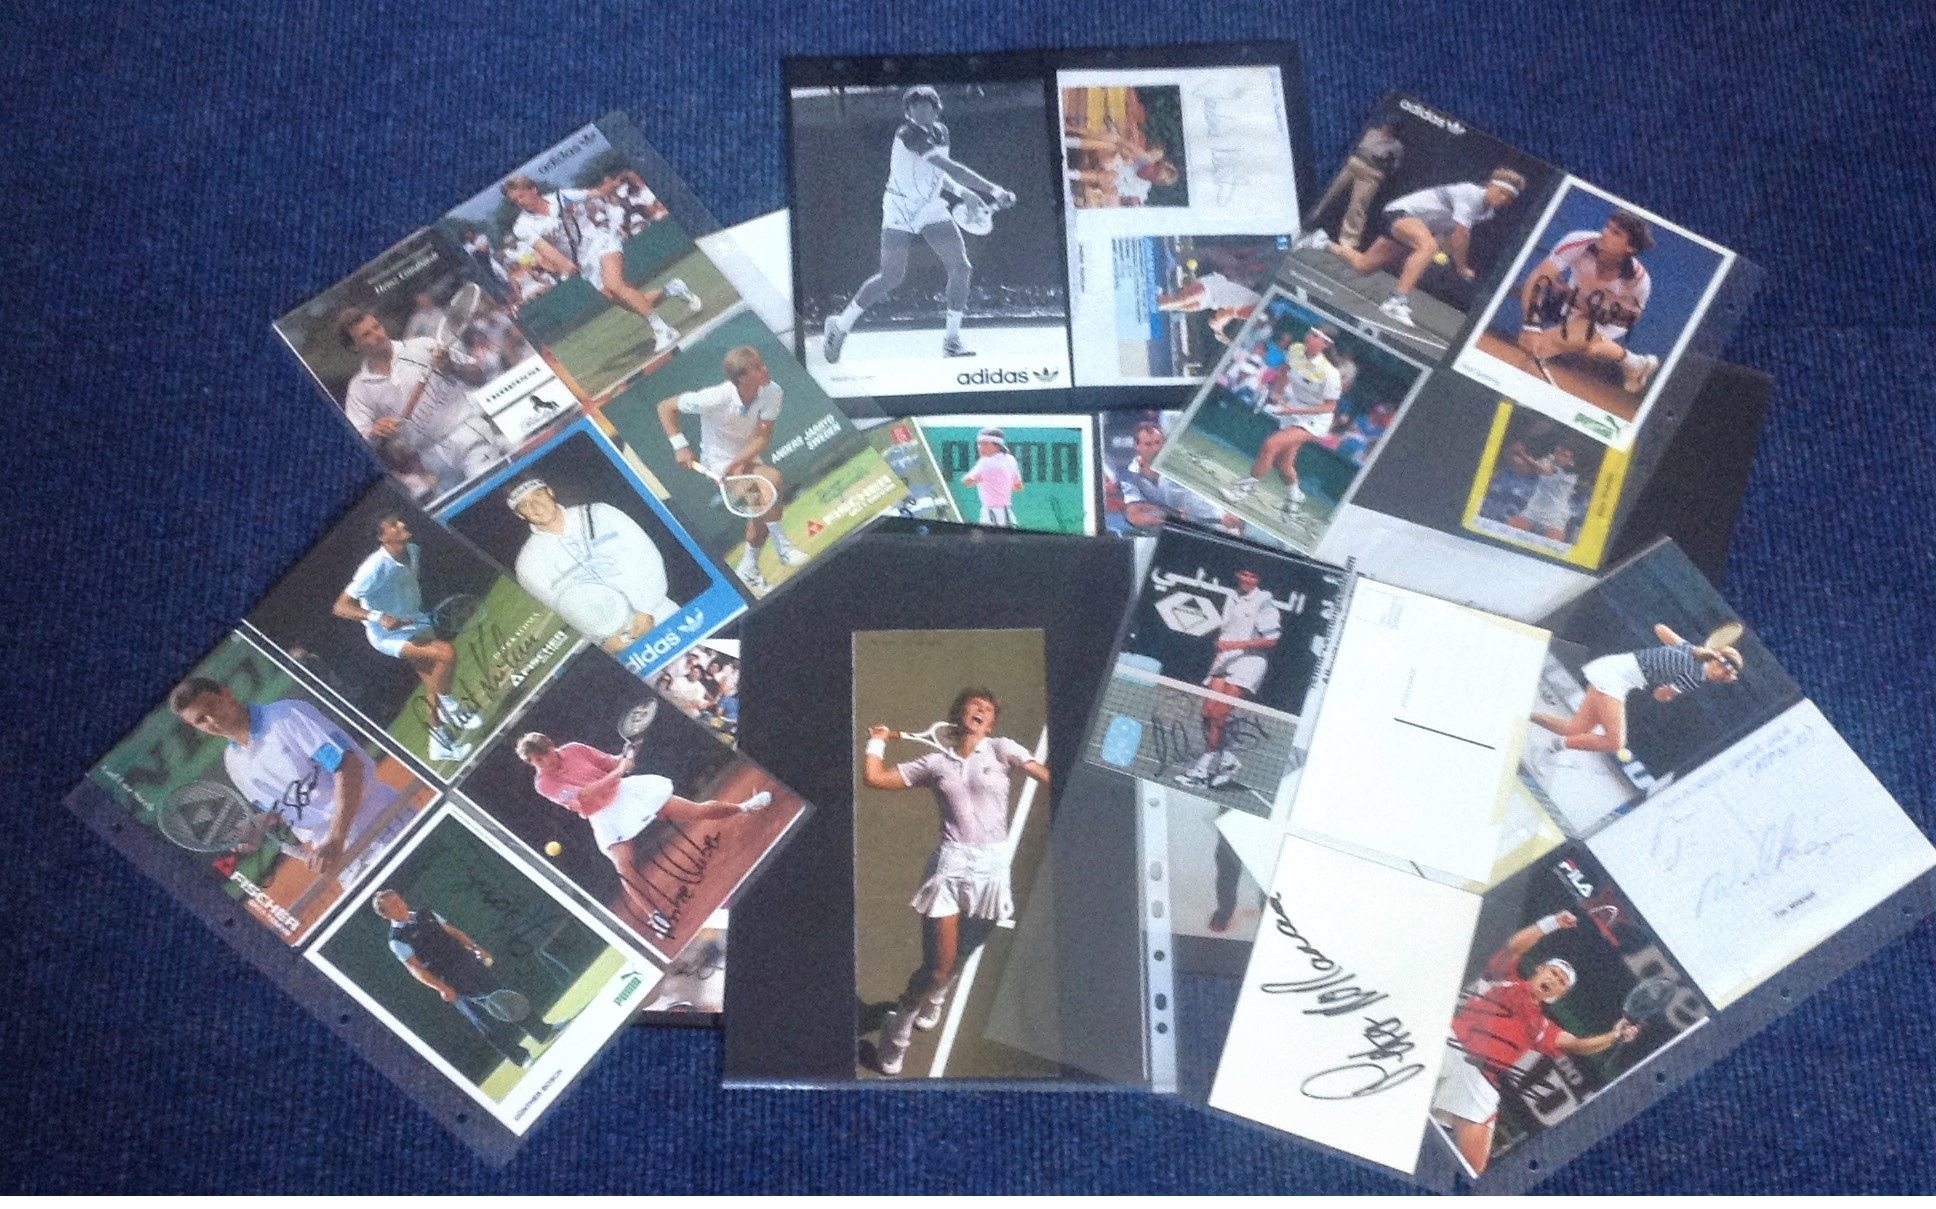 Lot 7 - Tennis signed collection. 55 items mainly 6x4 colour photos. Some of signatures included are